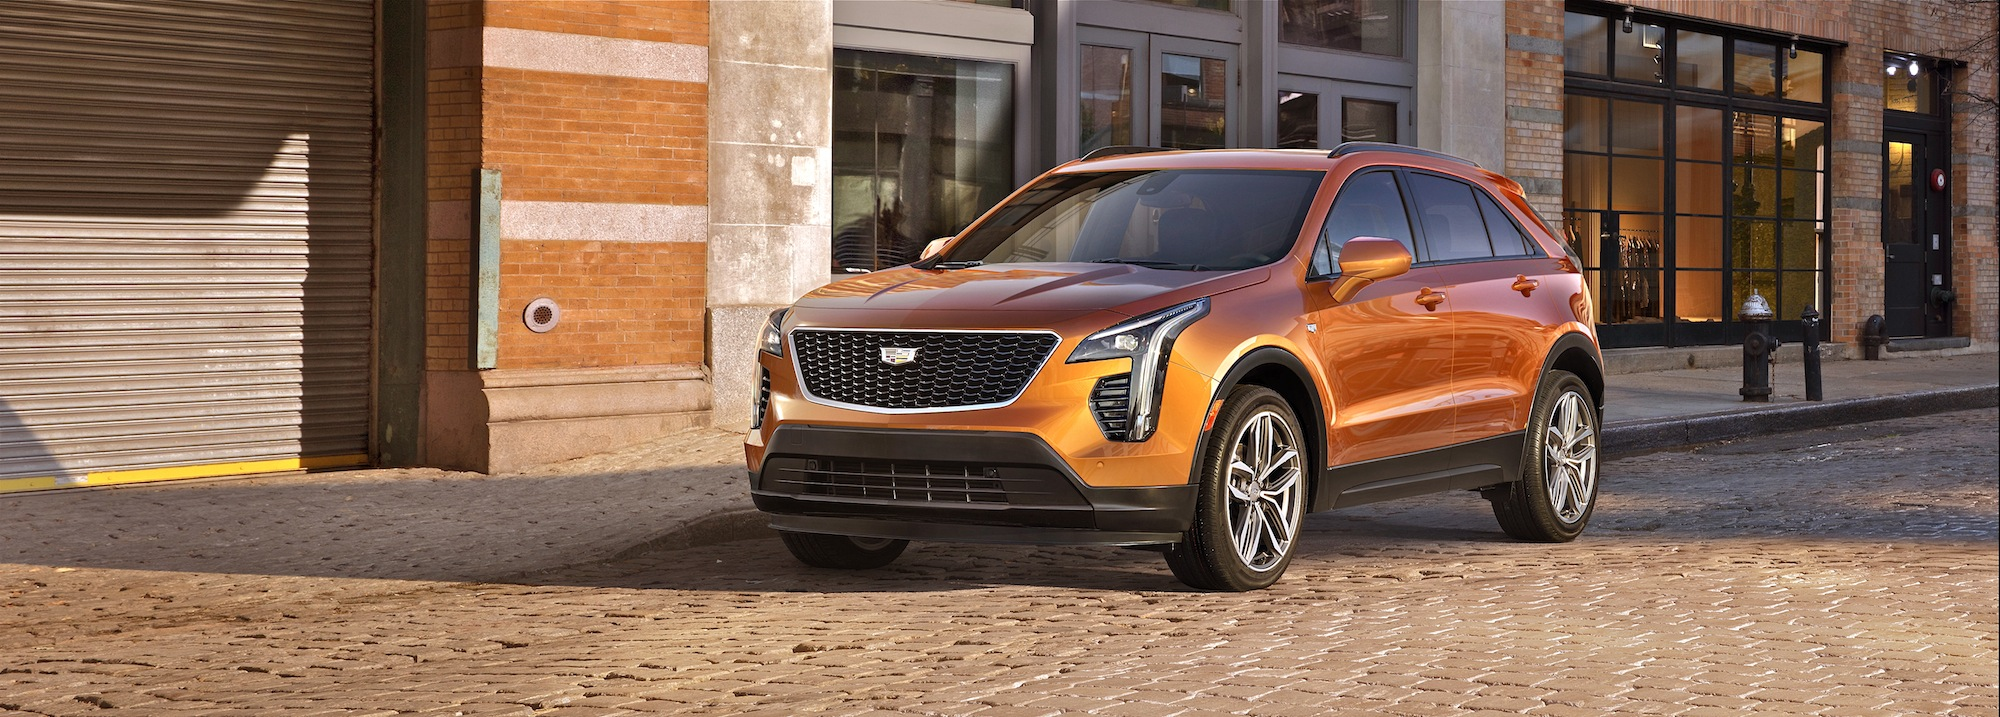 2019 Cadillac XT4: Cadillac Joins The Compact Luxury SUV Cage Match